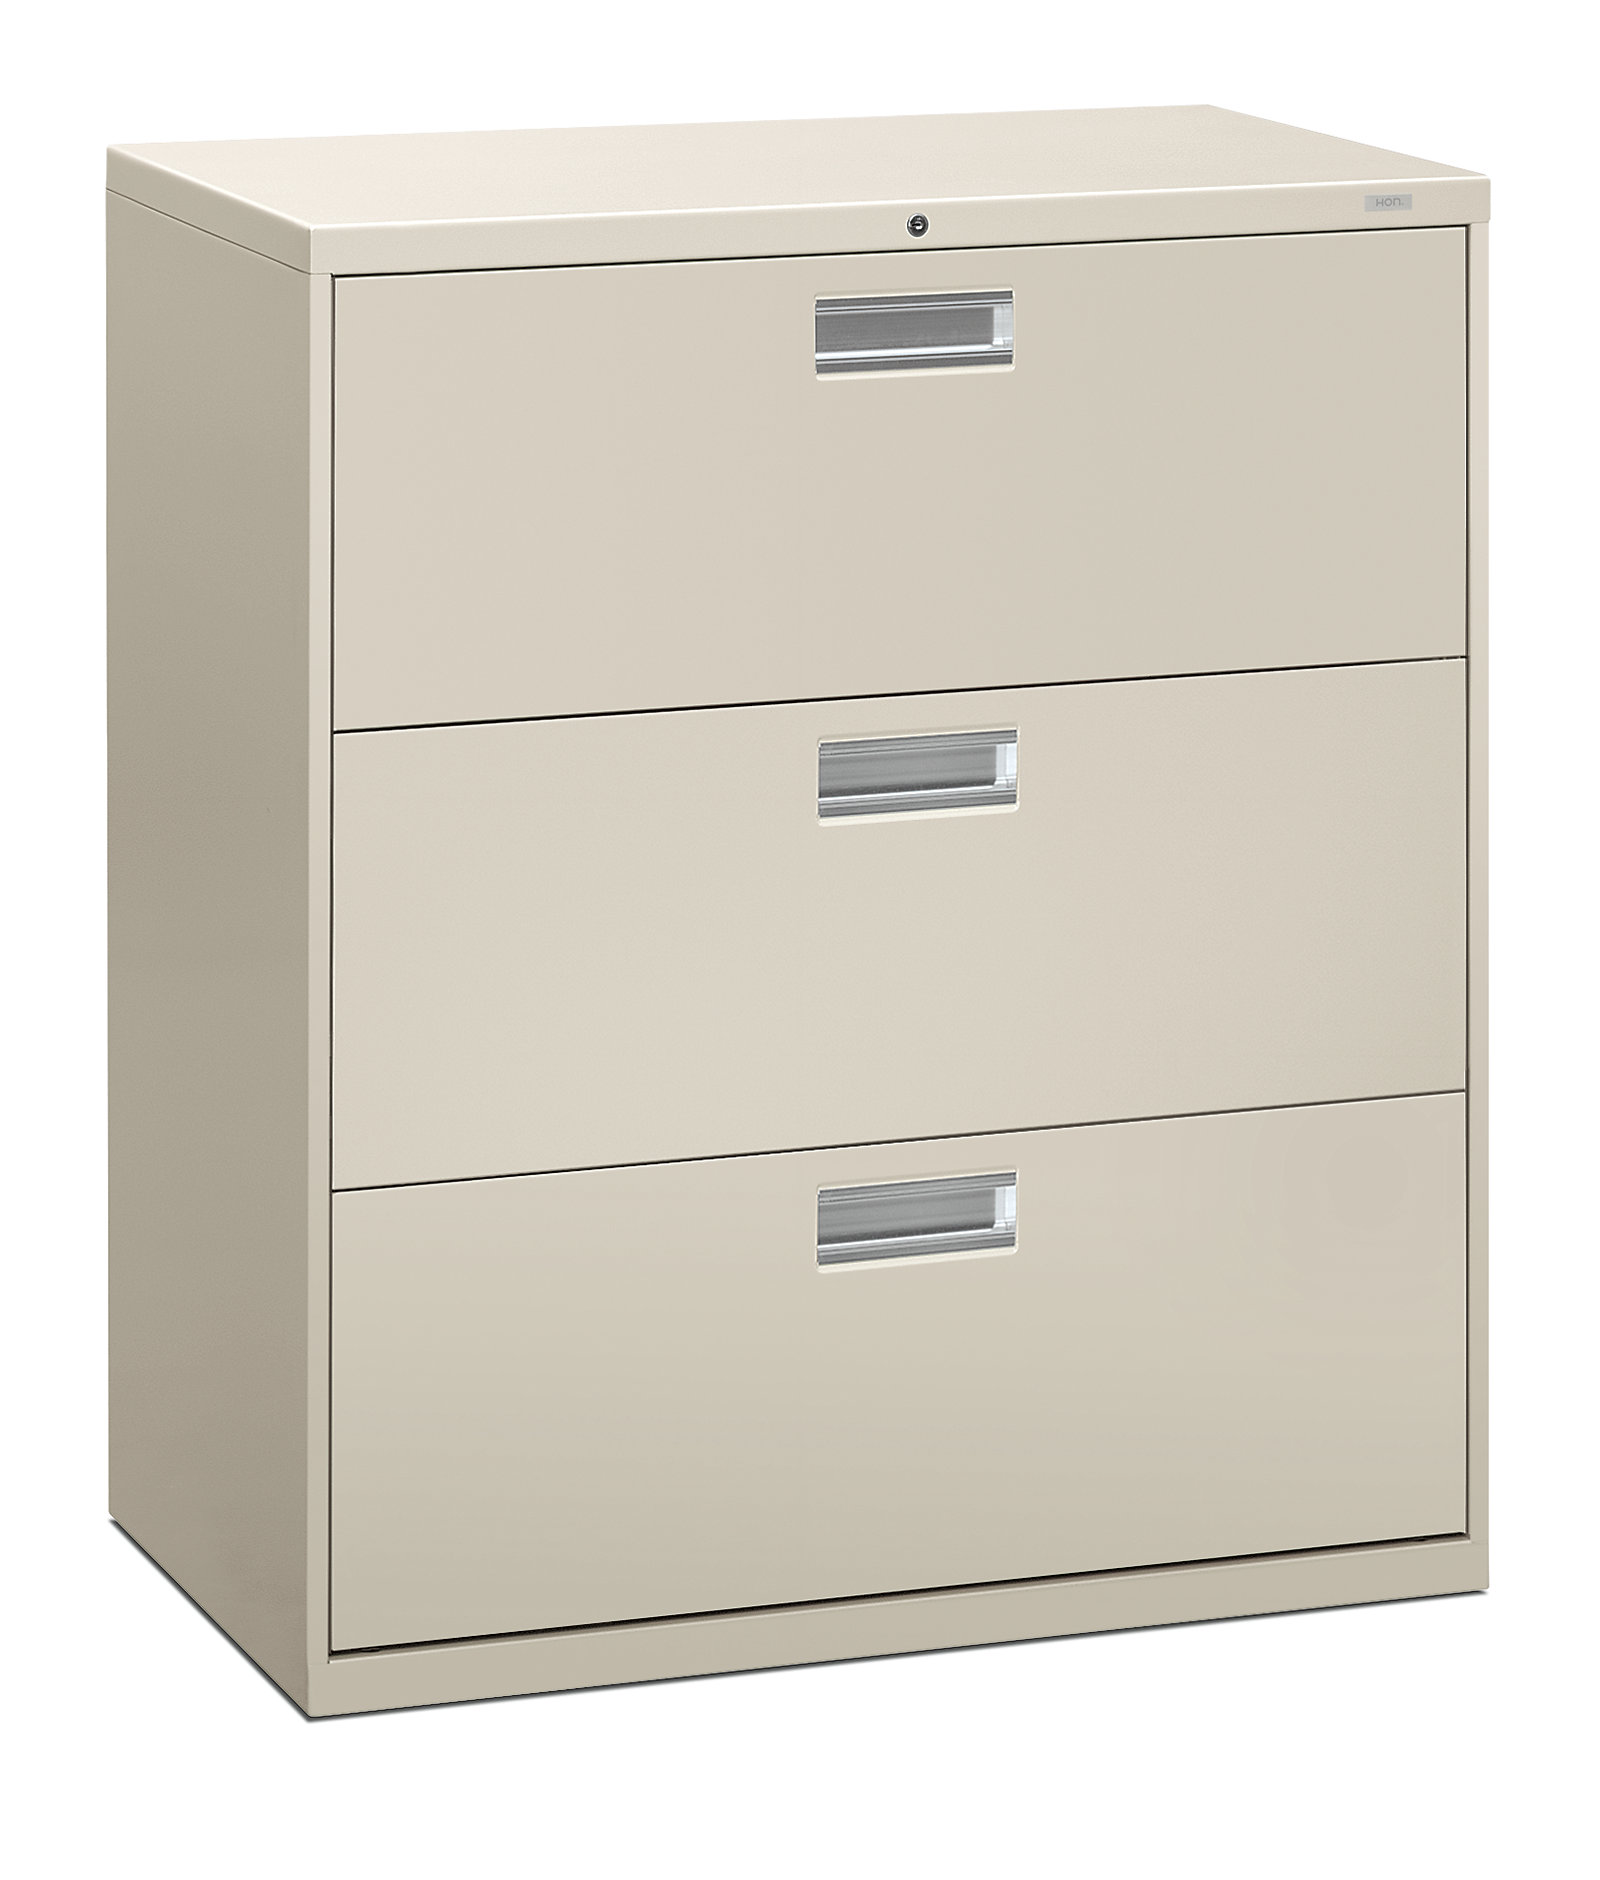 adelphia with tiger medical products save cabinets series at file drawers inc lateral cabinet